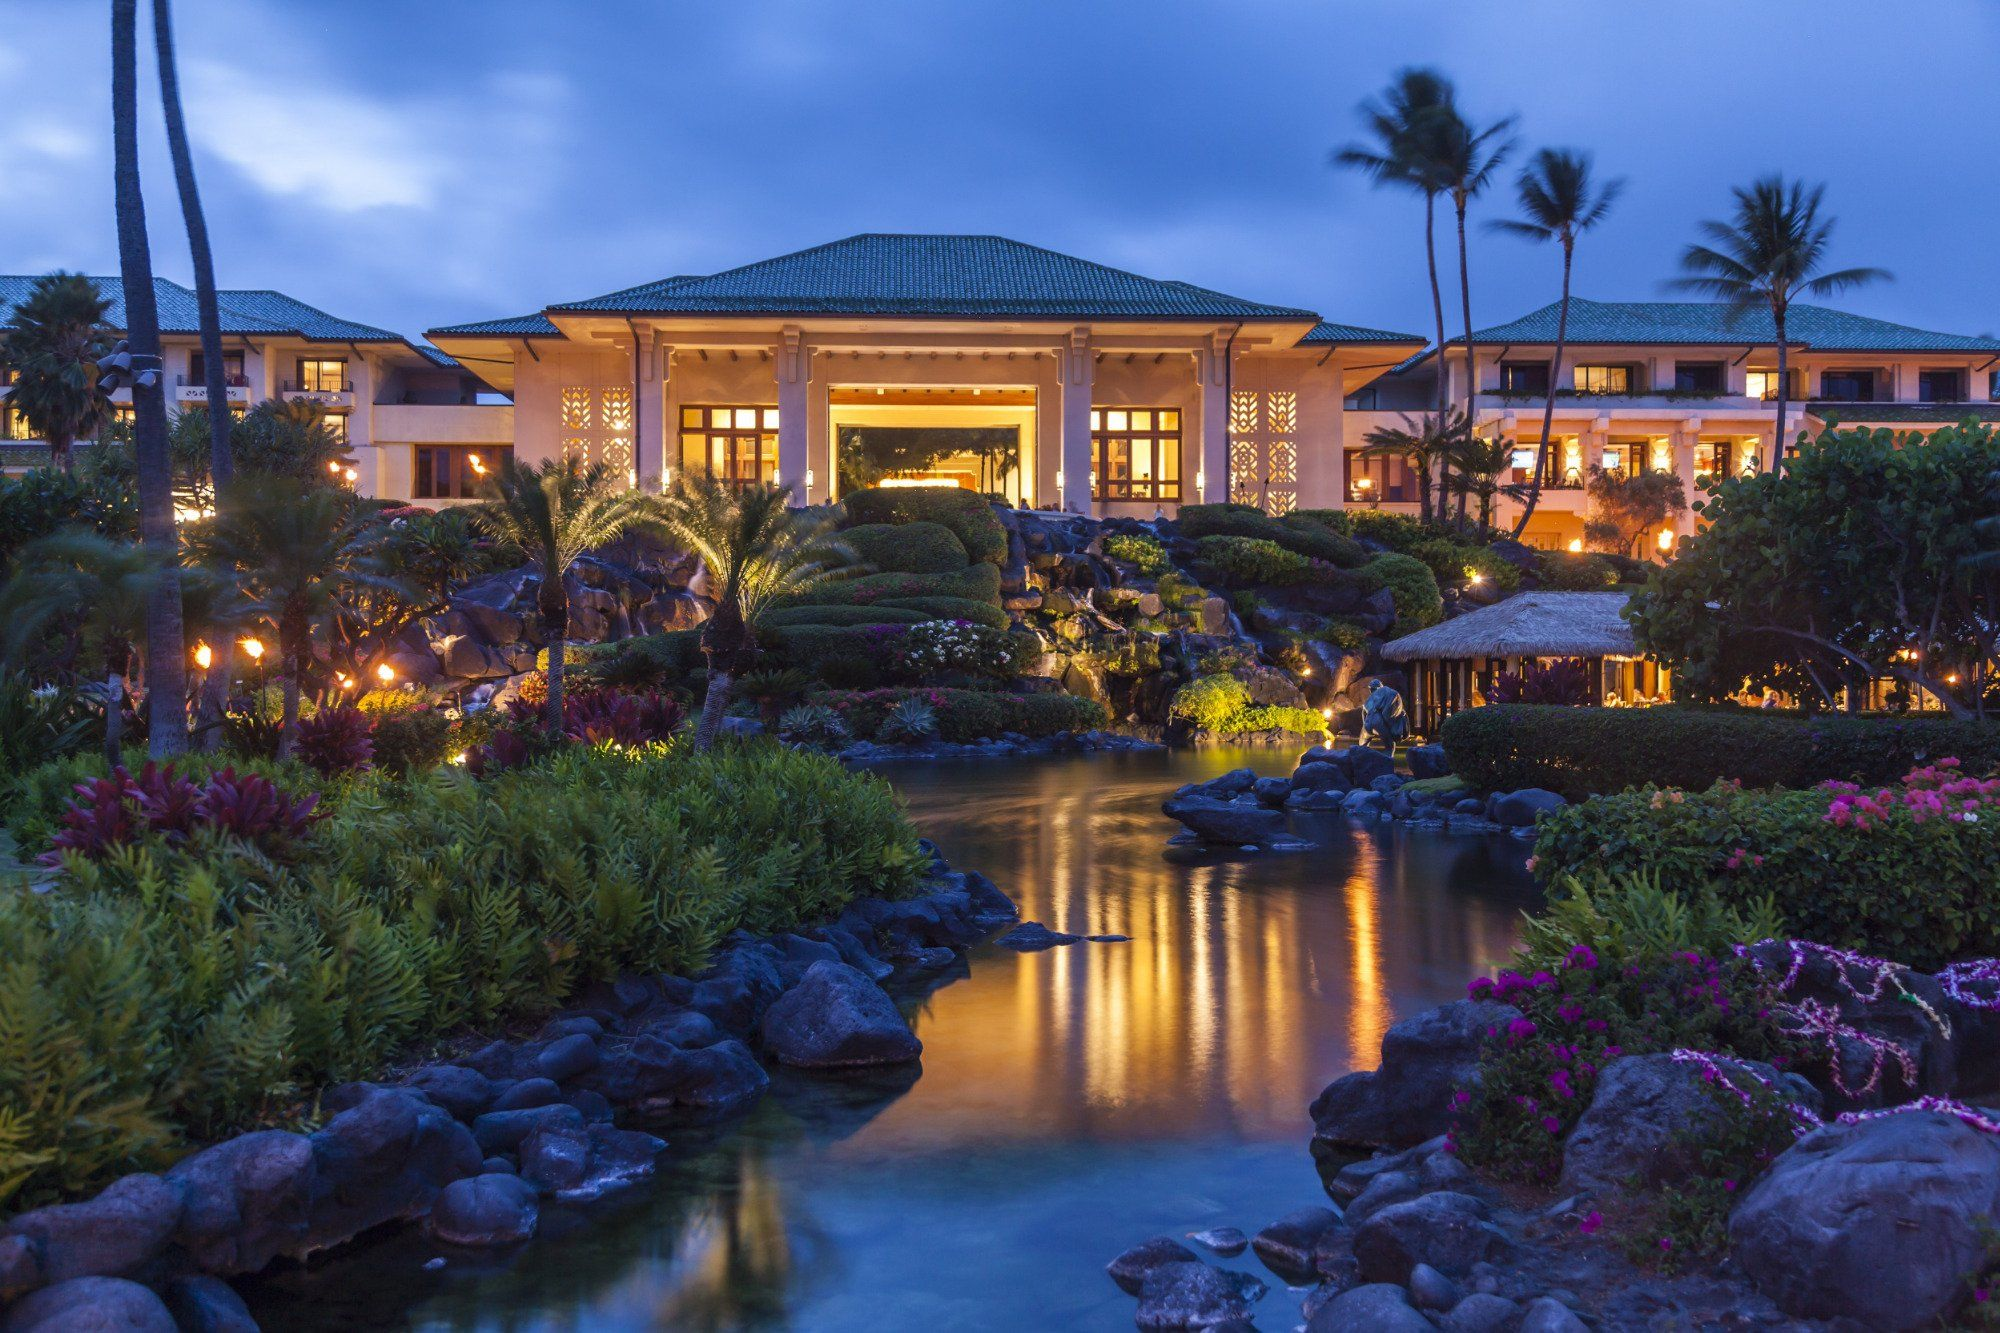 Now 293 Was 6 2 4 On Tripadvisor Grand Hyatt Kauai Resort Spa Poipu See 191 Traveler Reviews 269 Candid Photos And Great Deals For